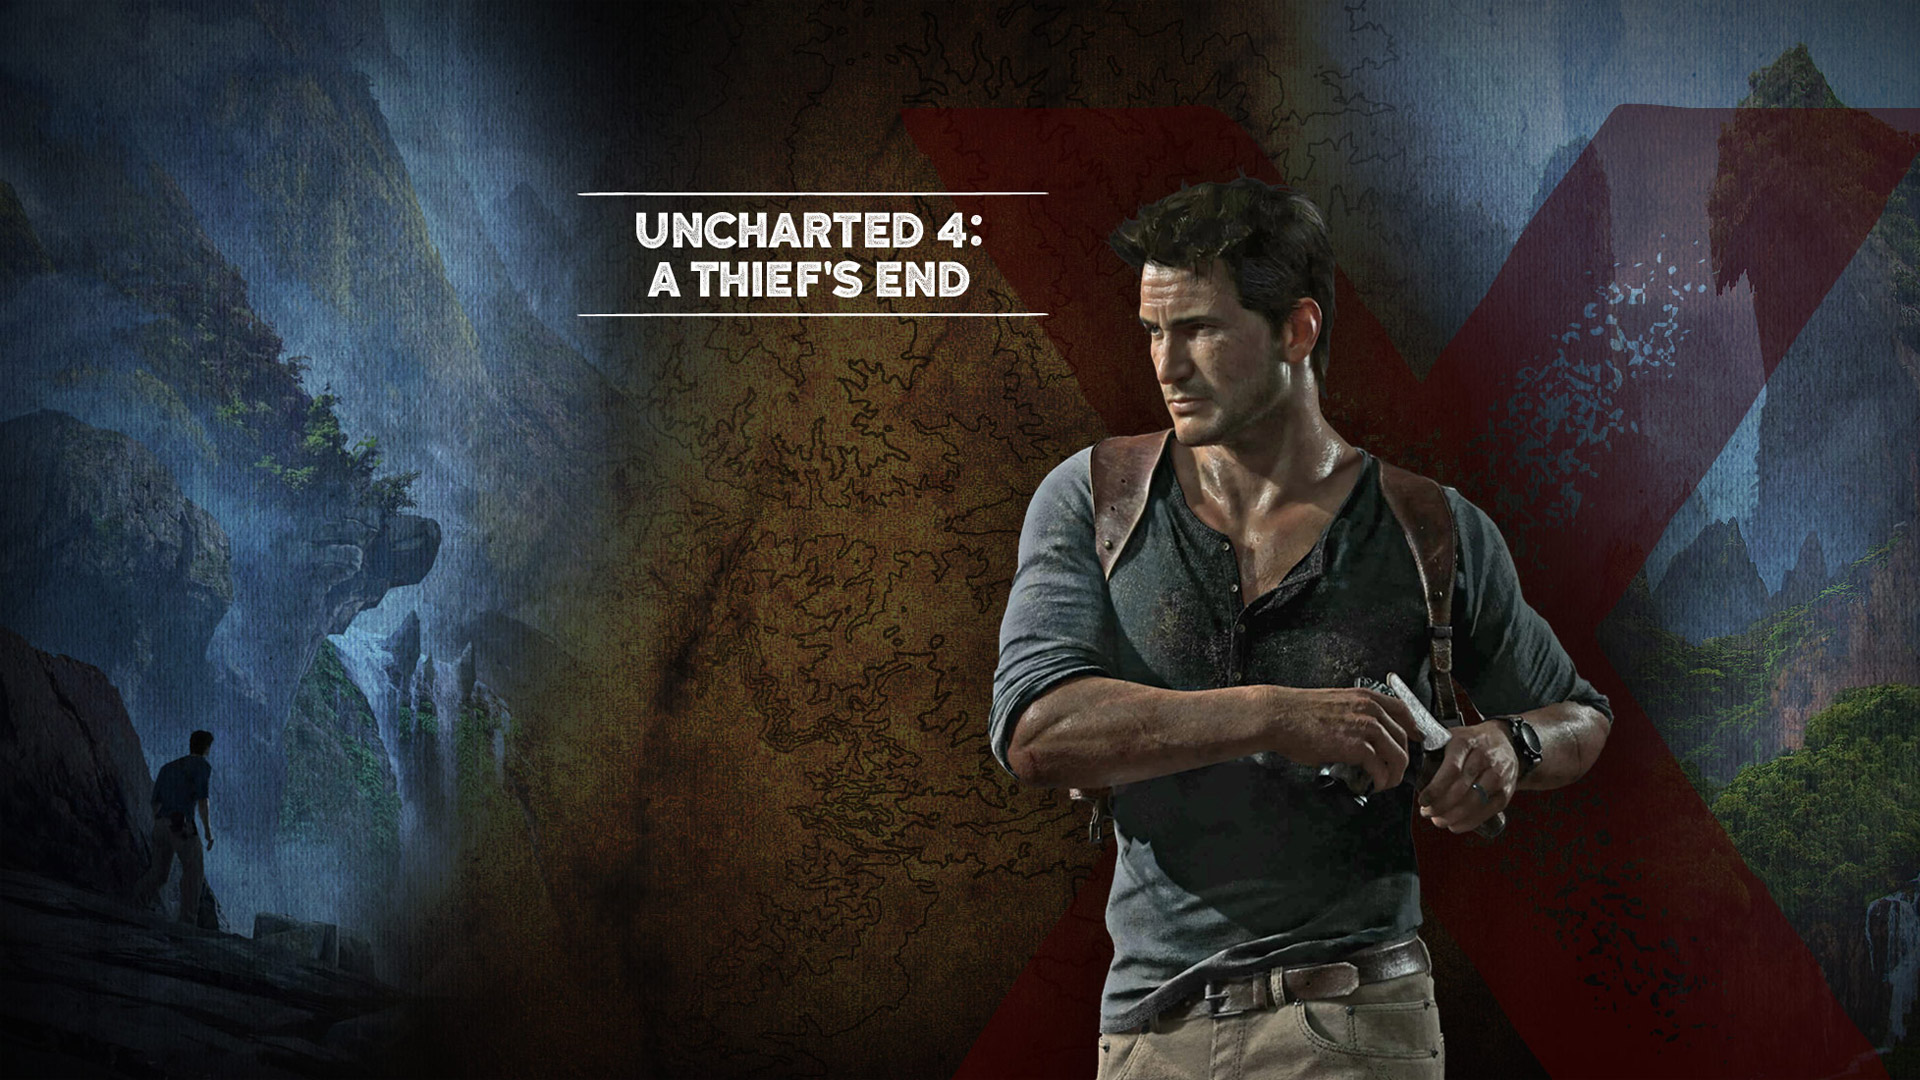 Uncharted 4 Game Hd Games 4k Wallpapers Images